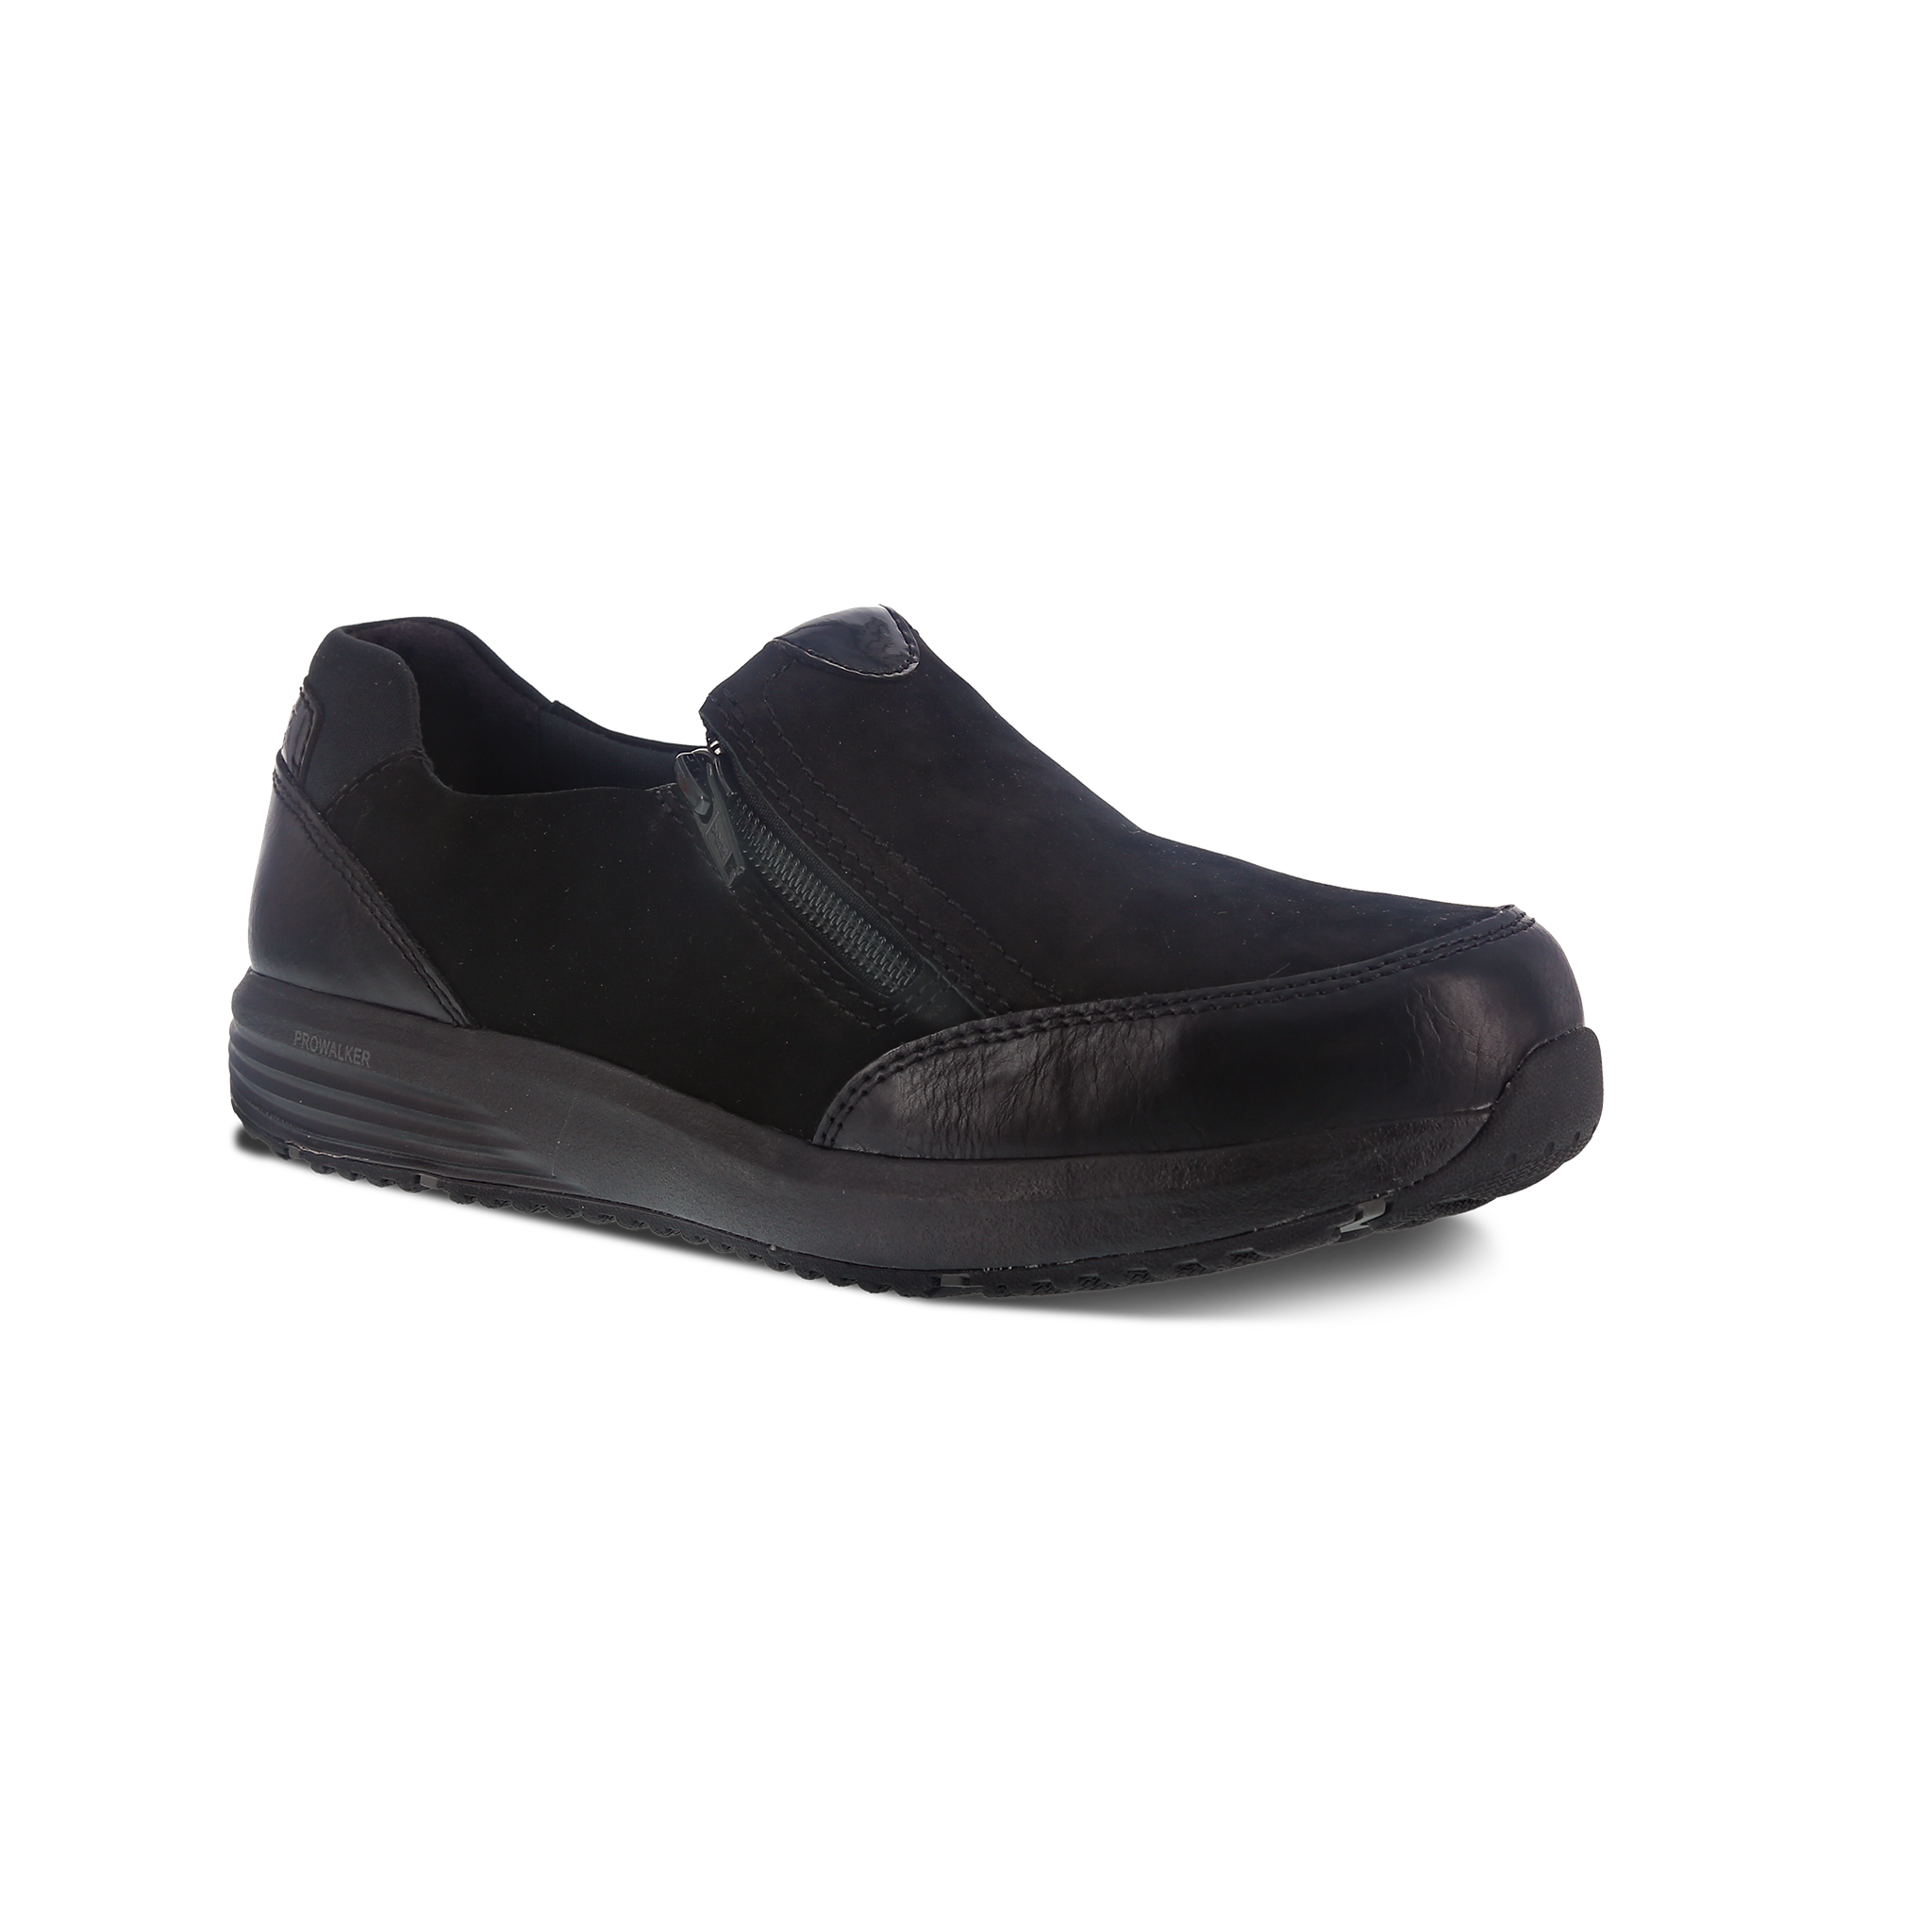 Rockport Women's truStride Work Slip-On Oxford - RK500